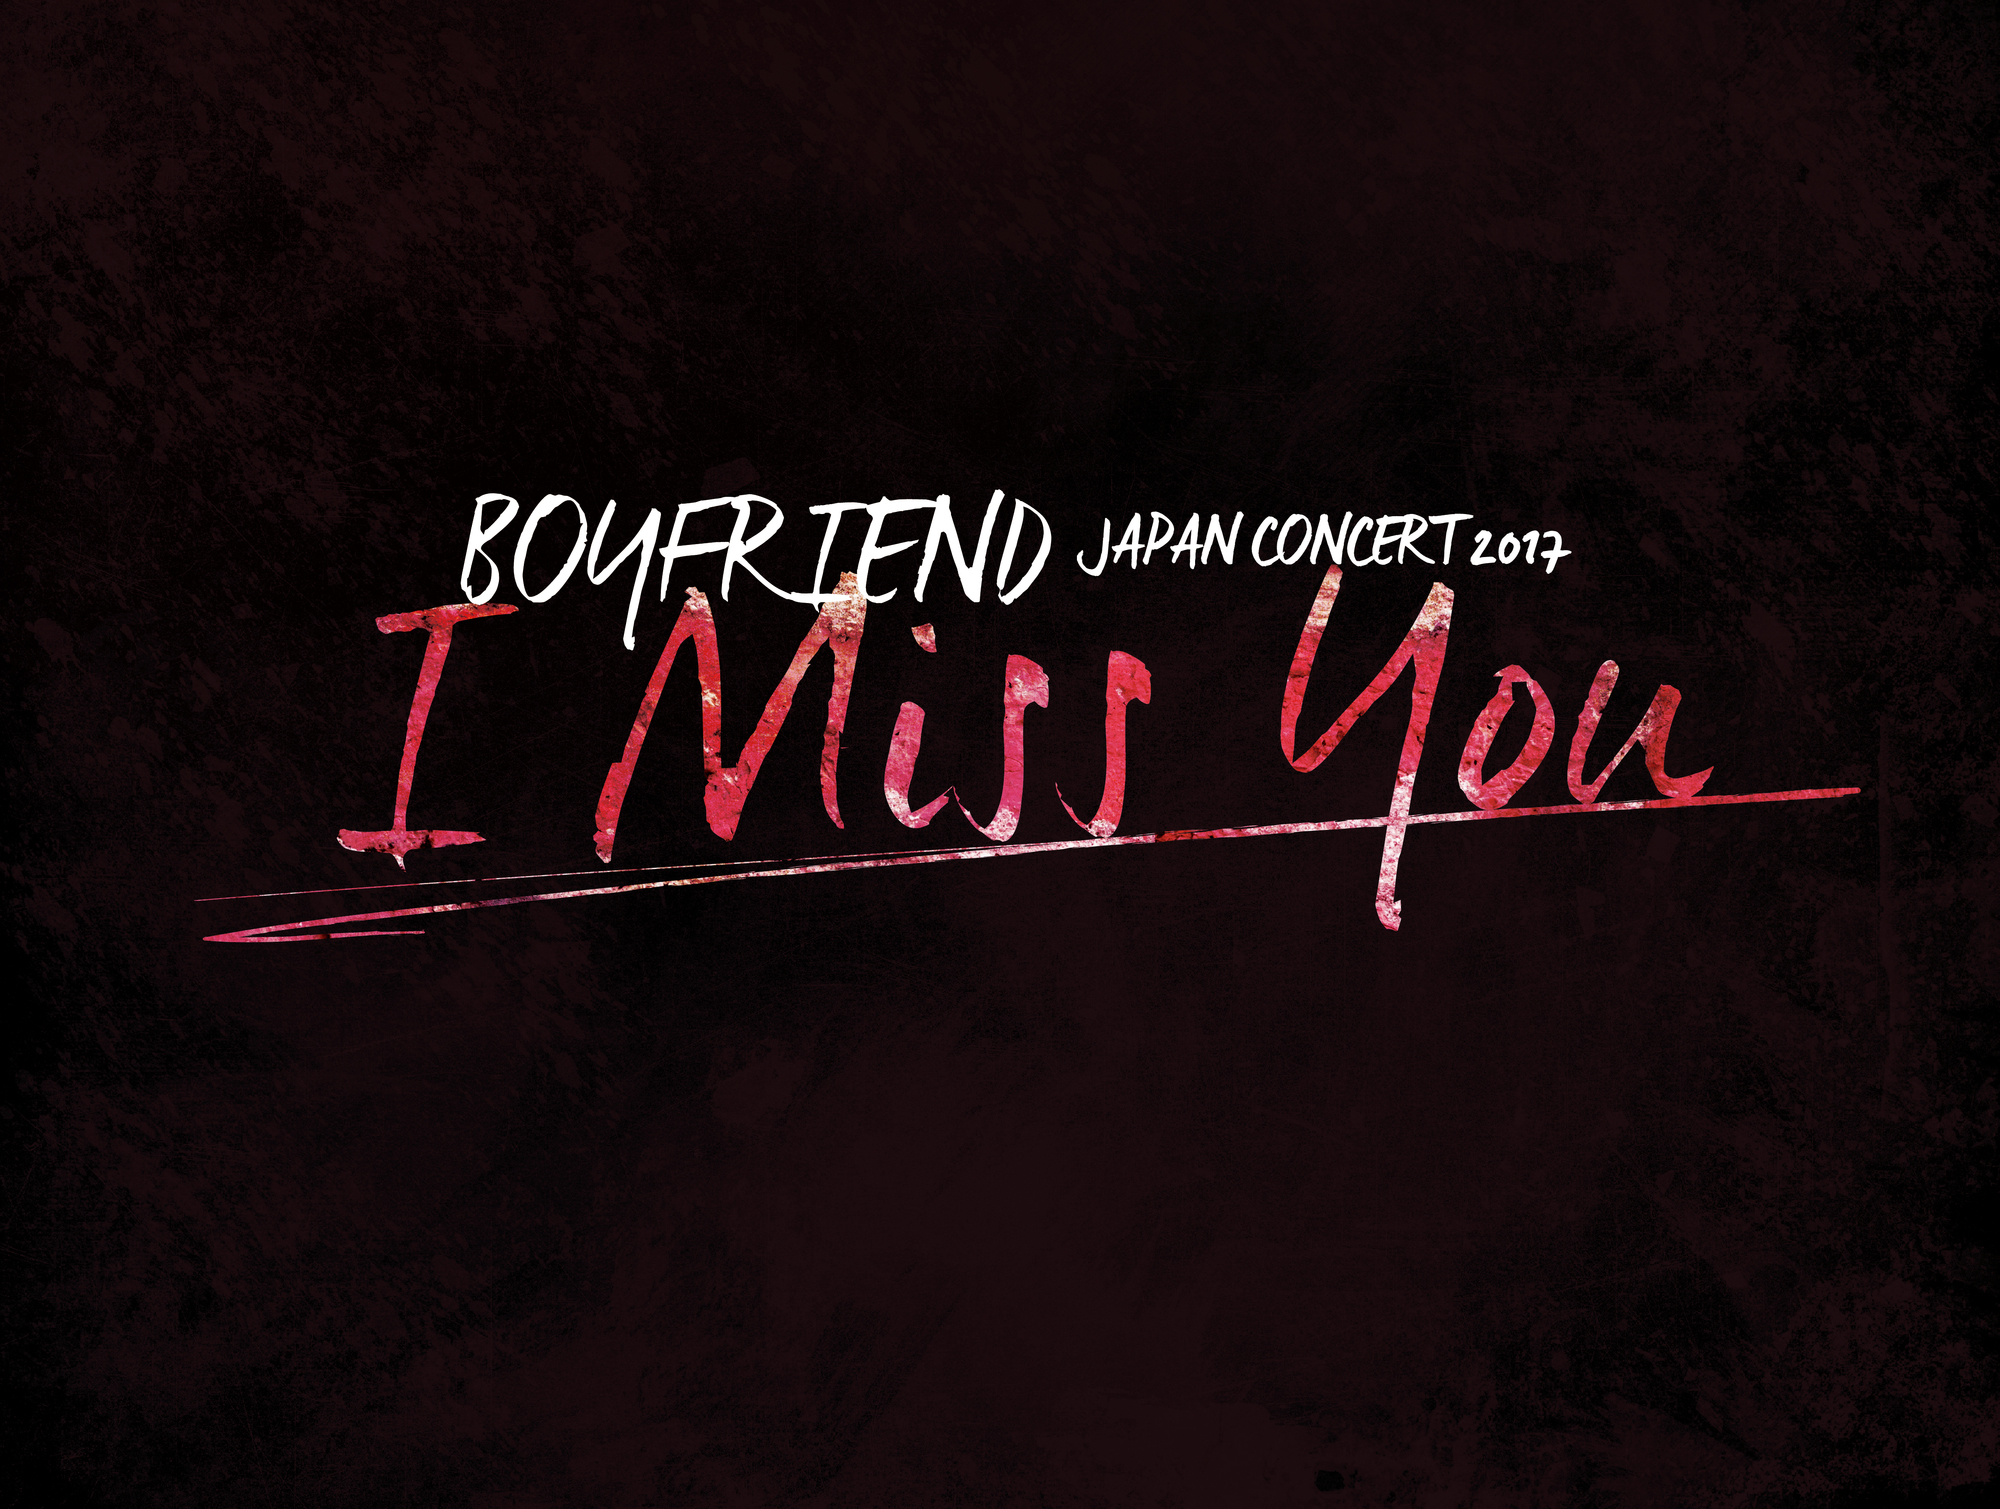 Content_i_miss_you_concert_logo